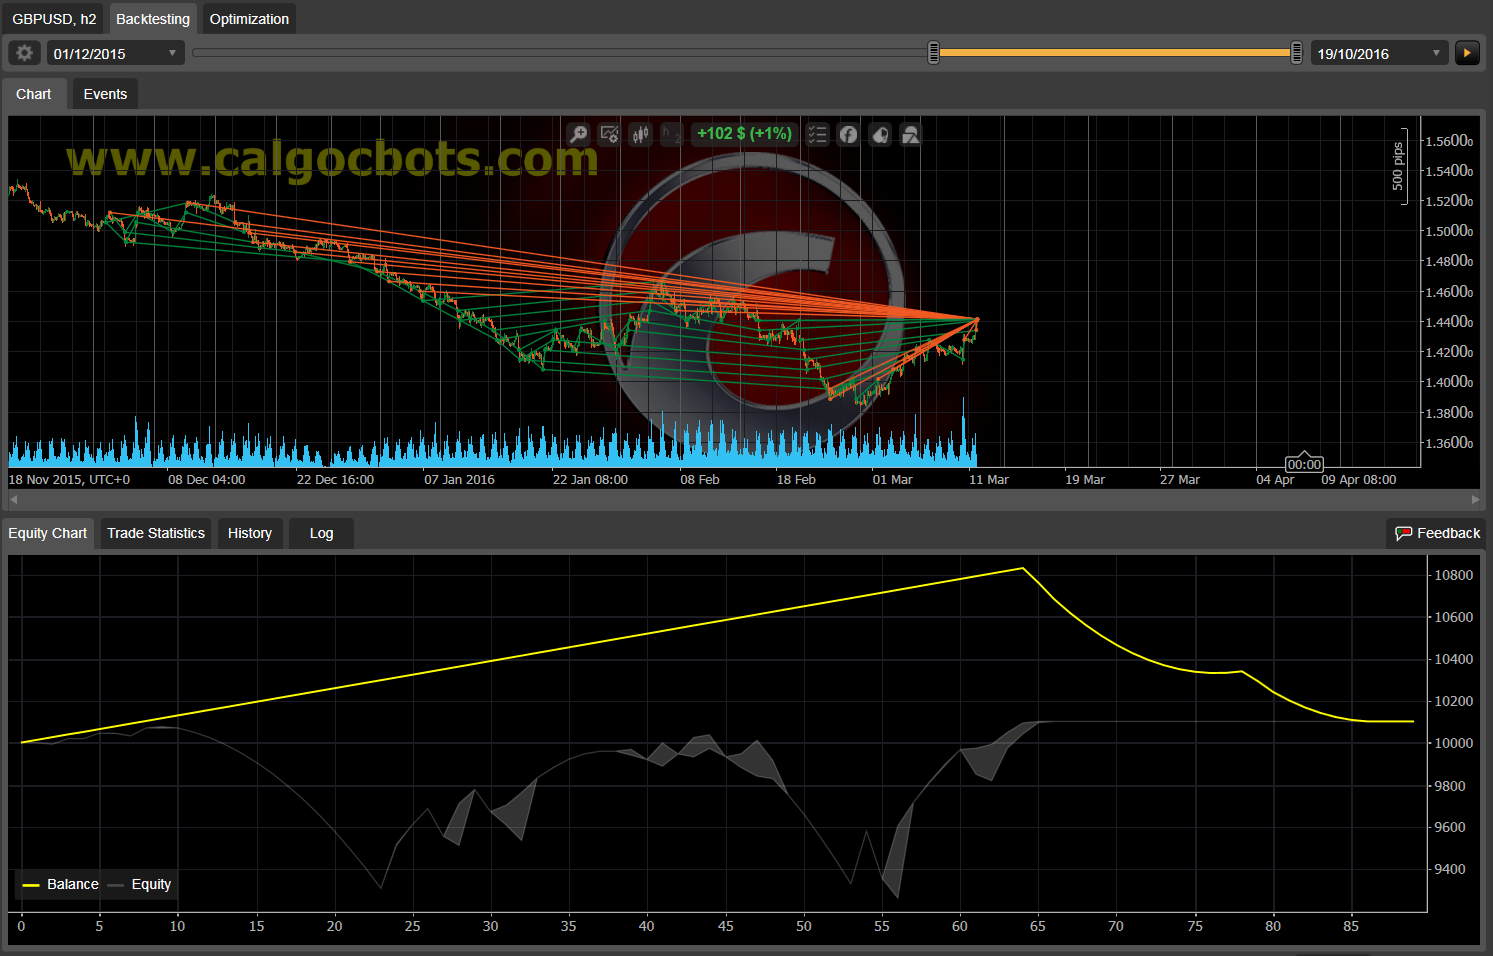 Dual Grid Hedge GBP USD 1h cAlgo cBots cTrader 1k 100 50 100 - 05 a